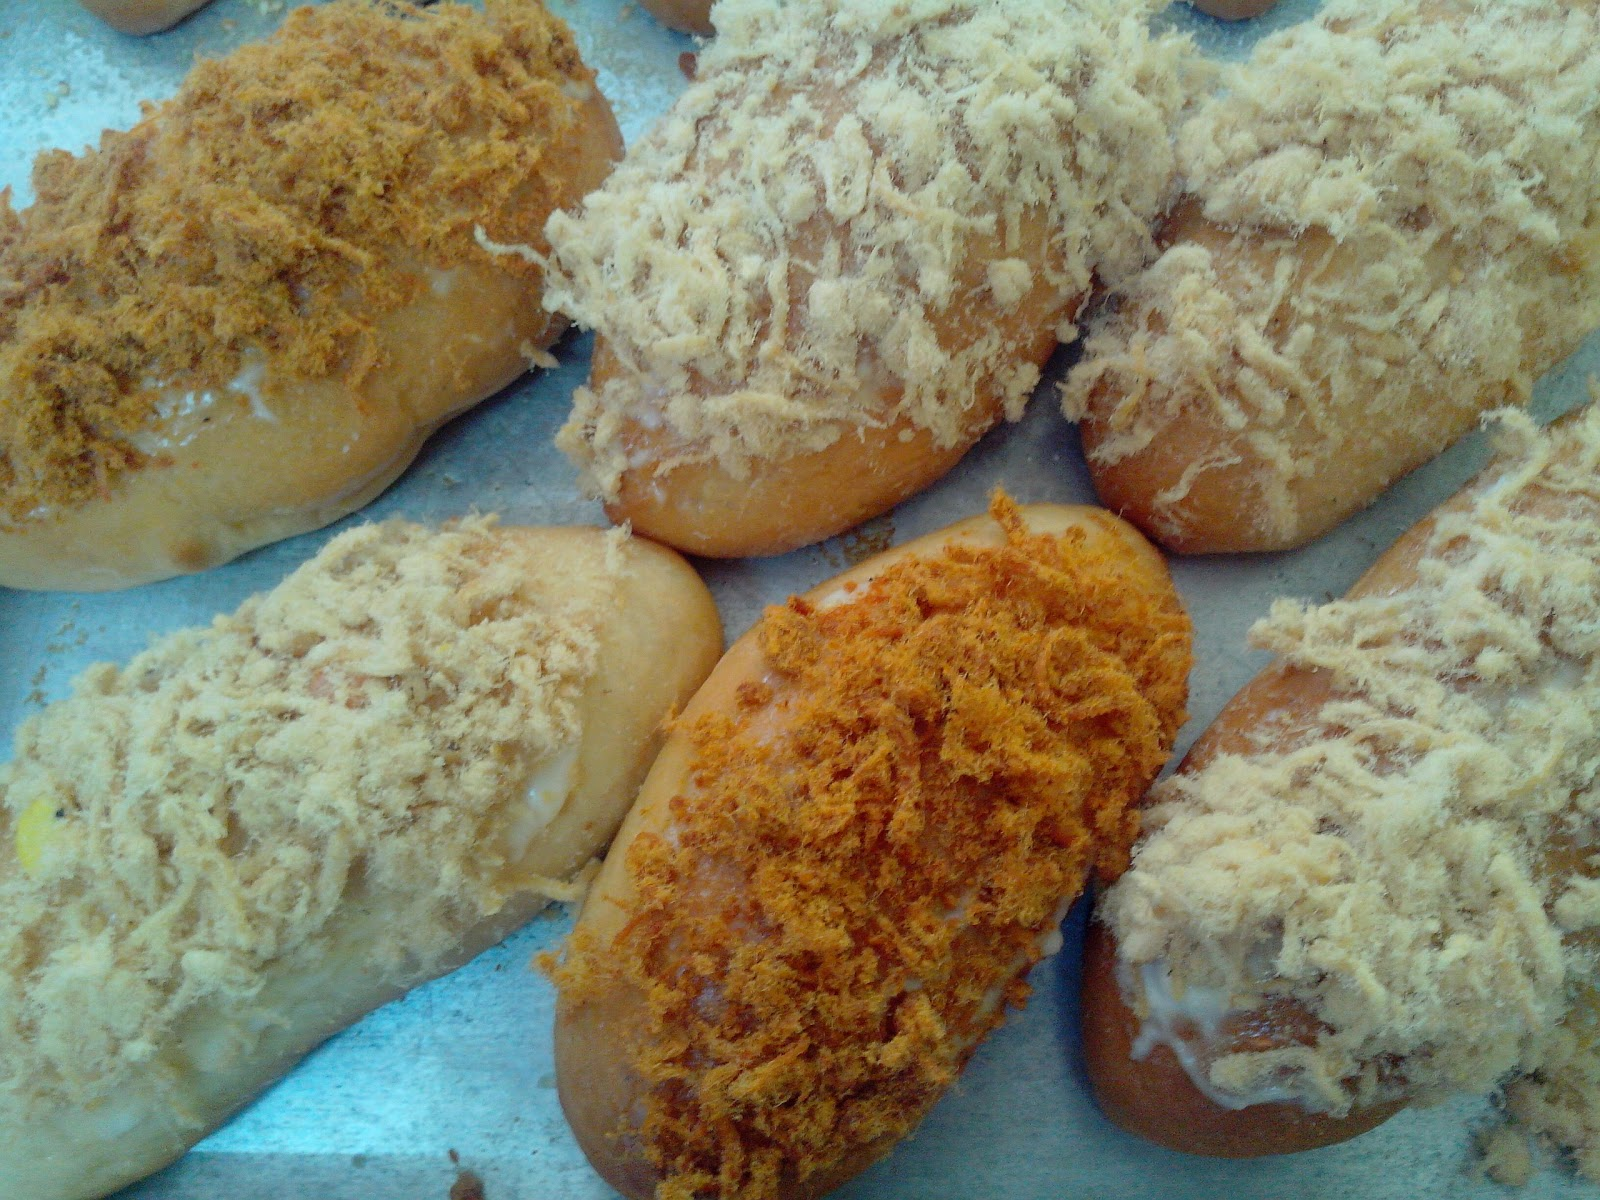 Buns Roti Manis Mamalleesya Special Delicious